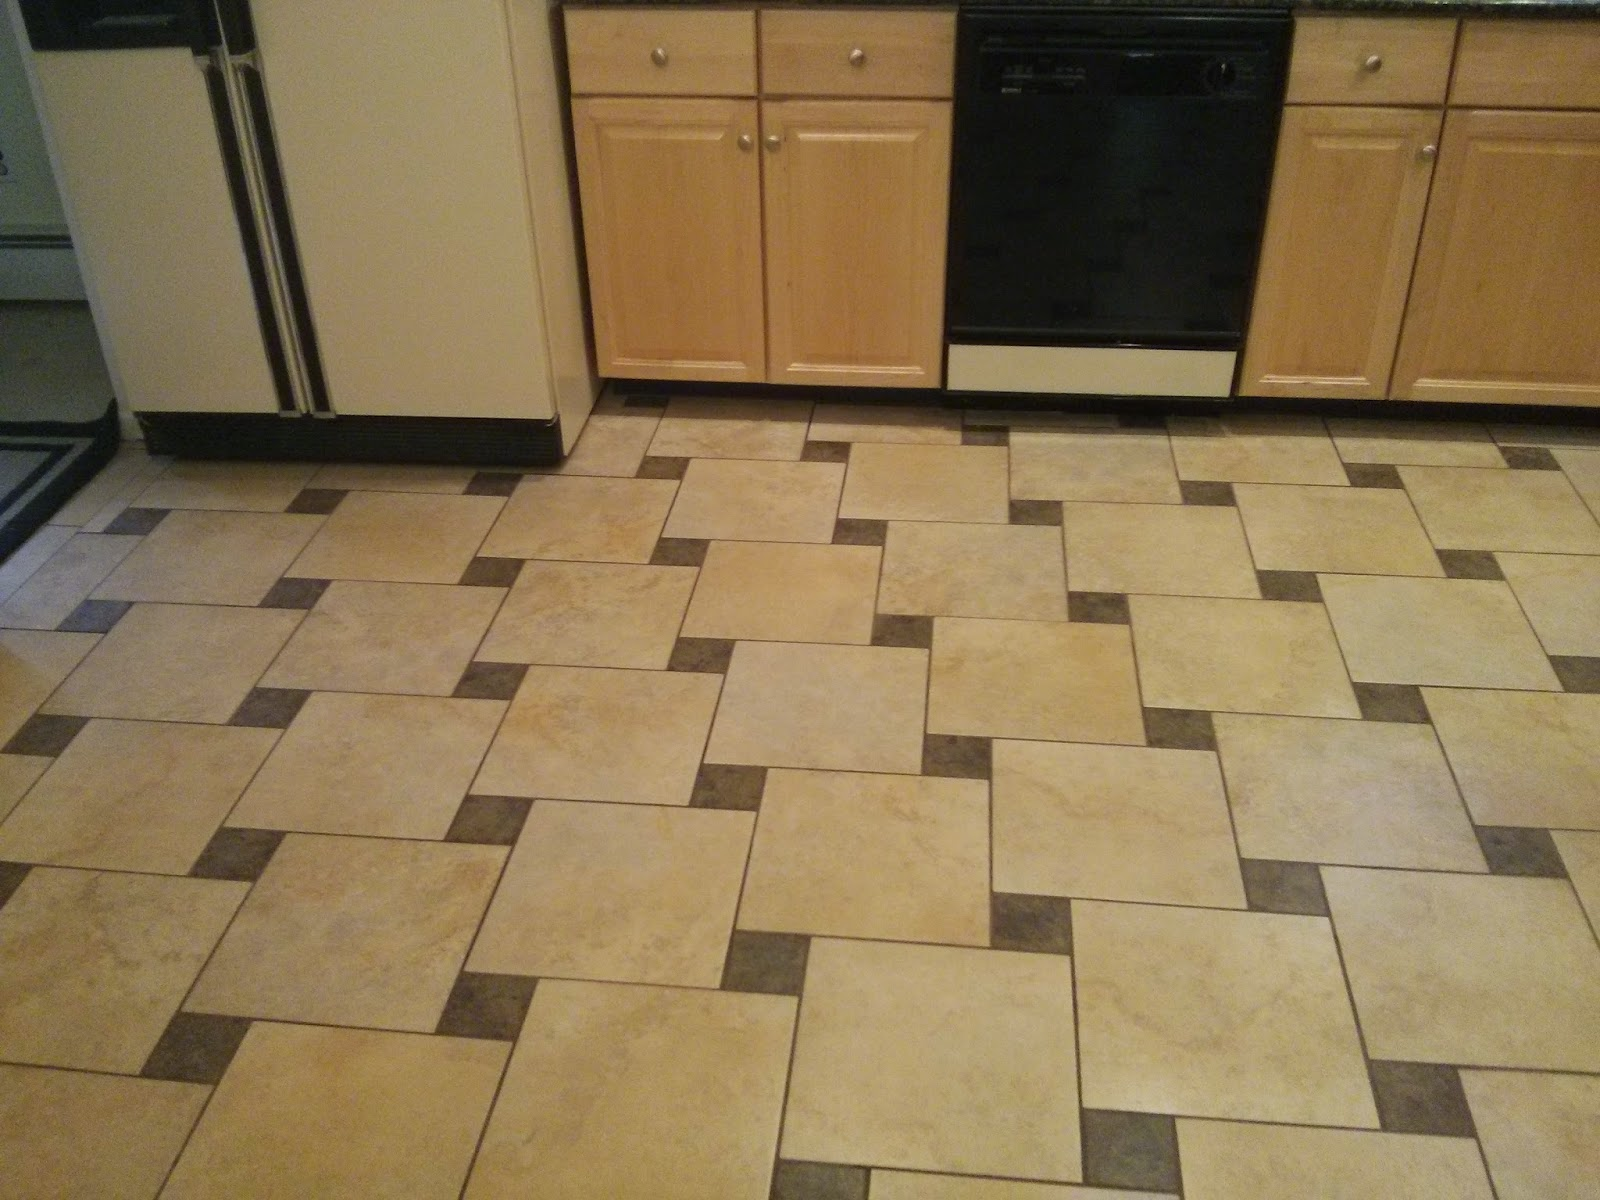 Floor installation photos may 2014 12x12 and 4x4 pinwheel pattern tile install in newtown dailygadgetfo Choice Image